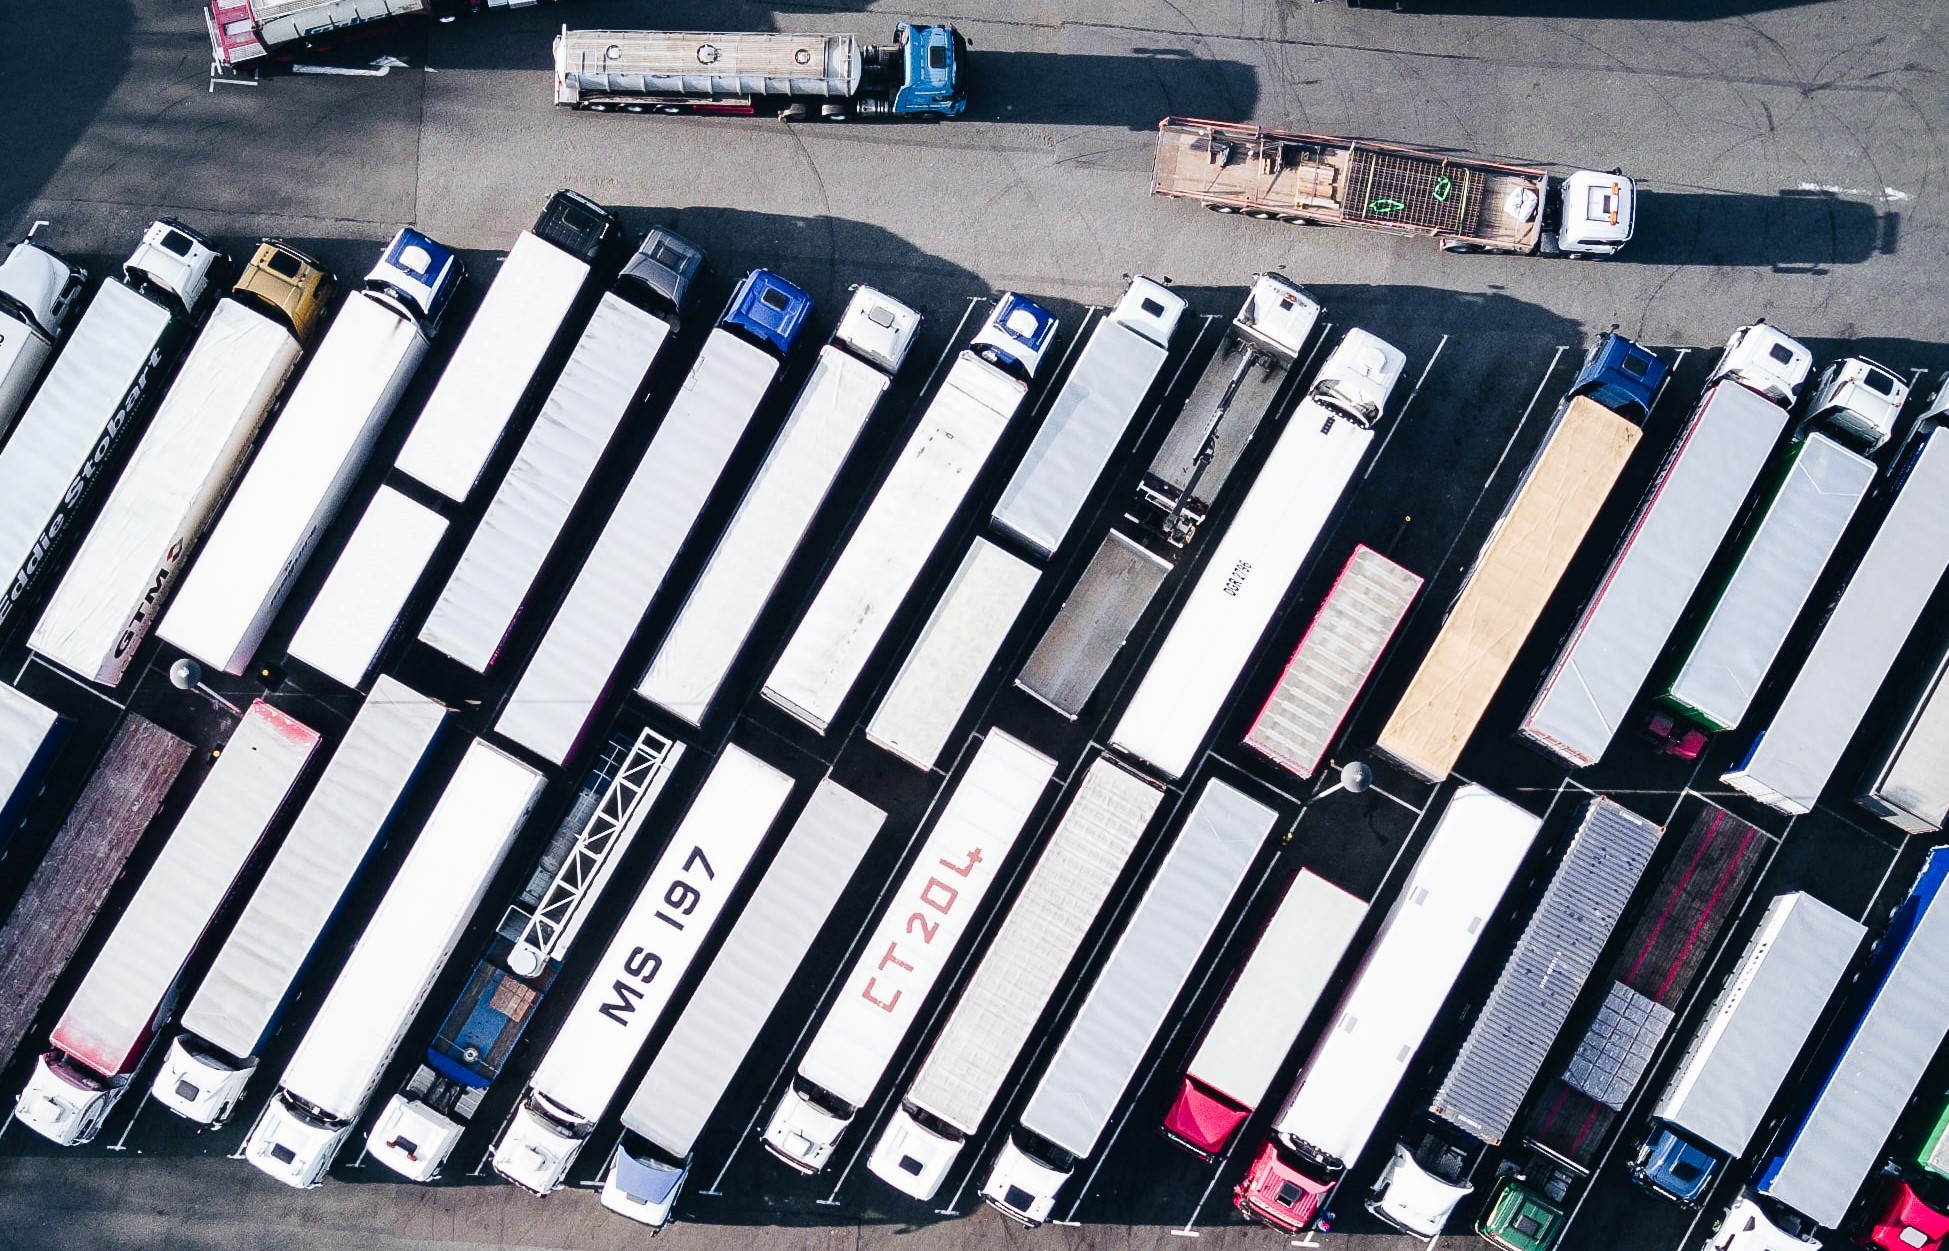 Truck Parking Ignored By House Committee With New Reconciliation Bill